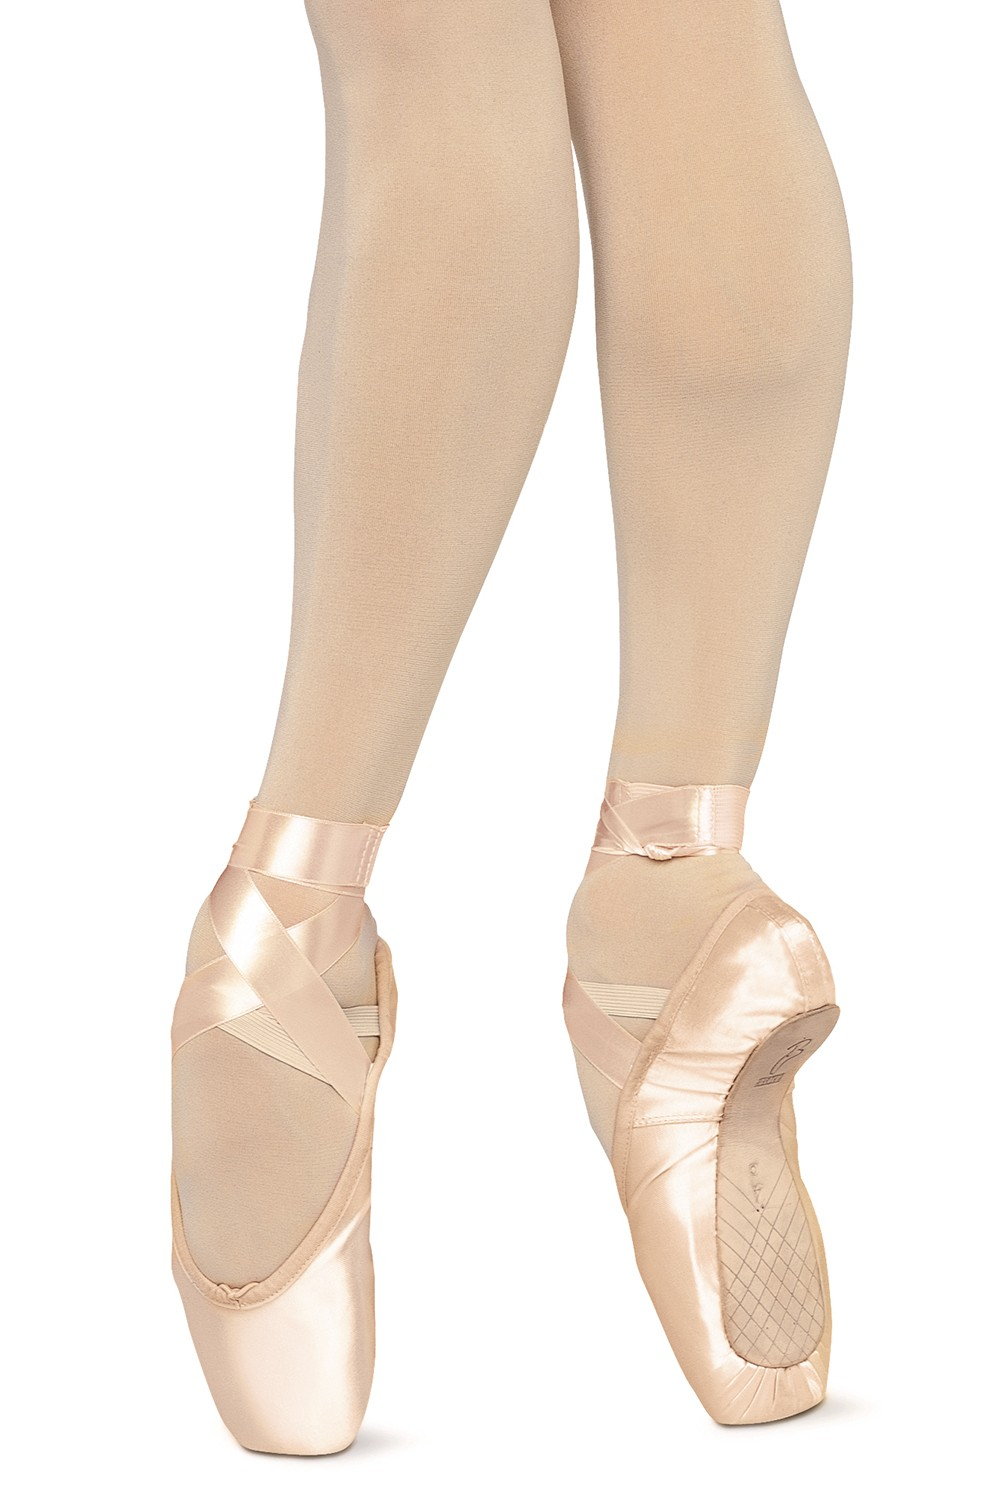 Tmt 30 Pointe Shoes